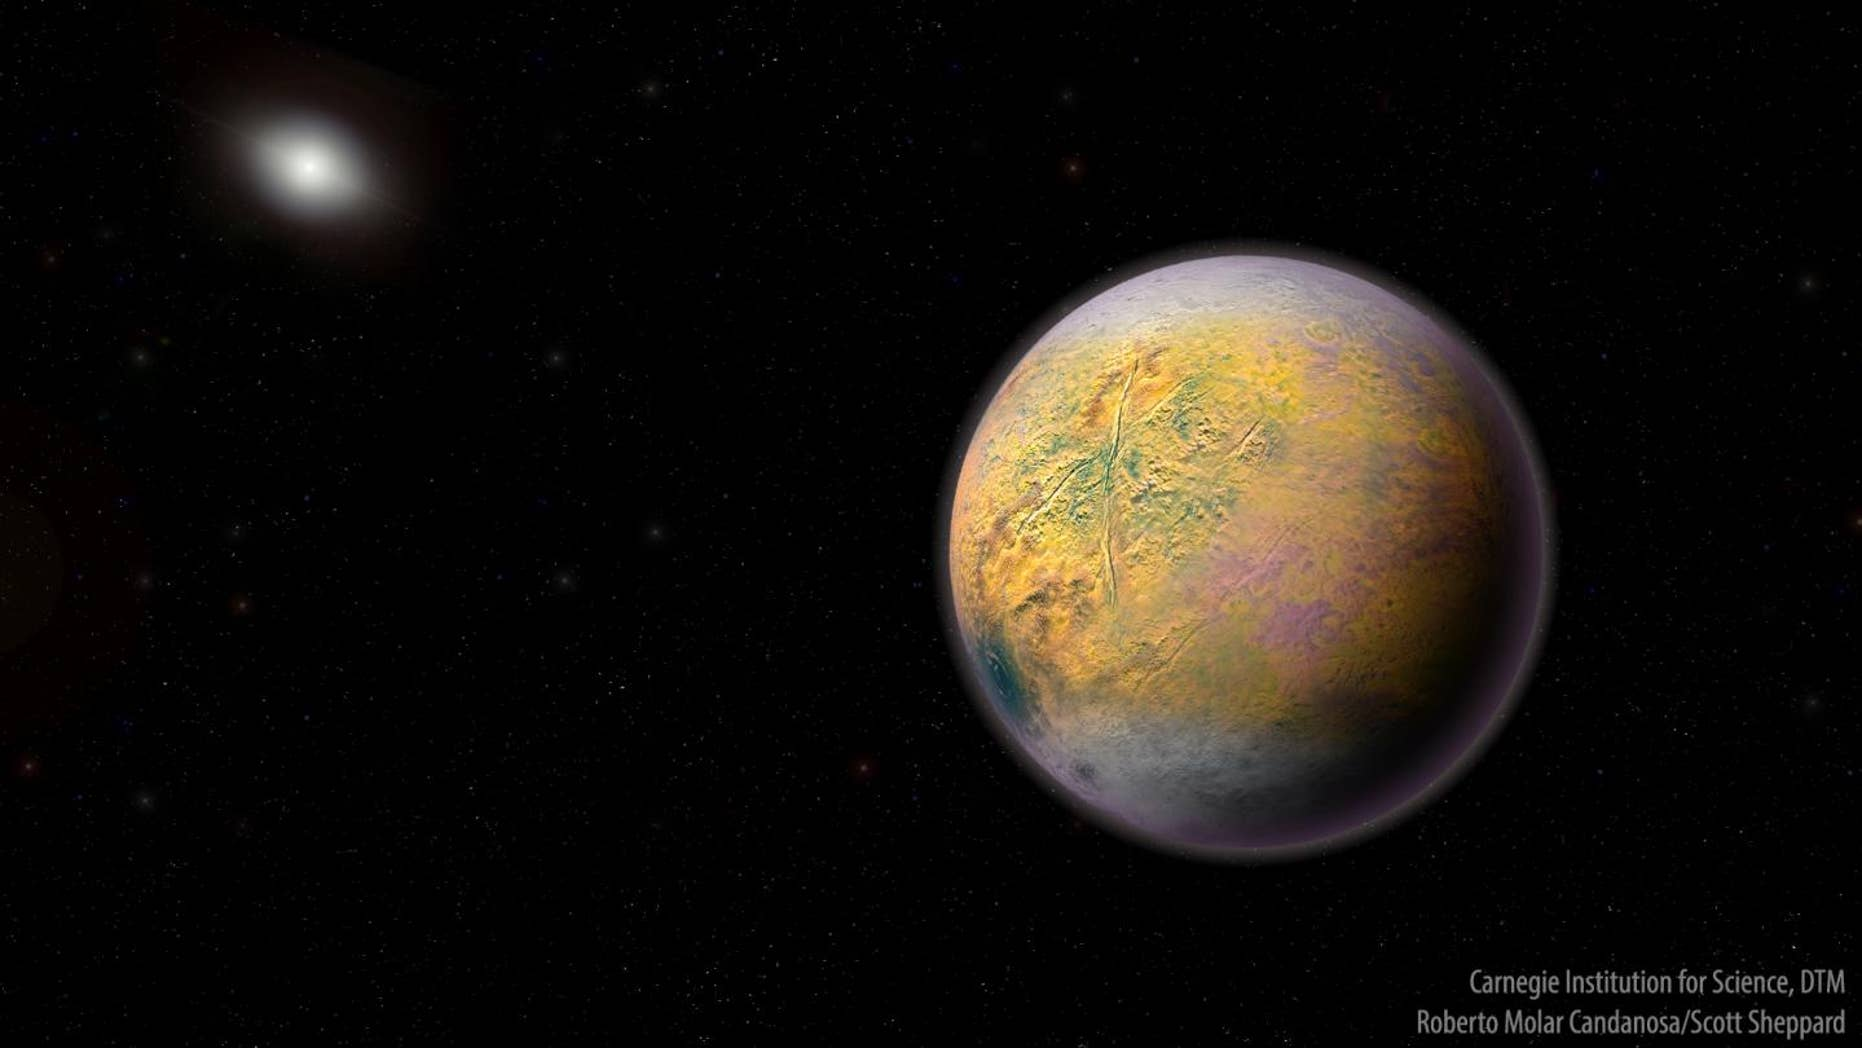 An artist's conception of a distant Solar System Planet X, which could be shaping the orbits of smaller extremely distant outer Solar System objects like 2015 TG387 discovered by a team of Carnegie's Scott Sheppard, Northern Arizona University's Chad Trujillo, and the University of Hawaii's David Tholen.